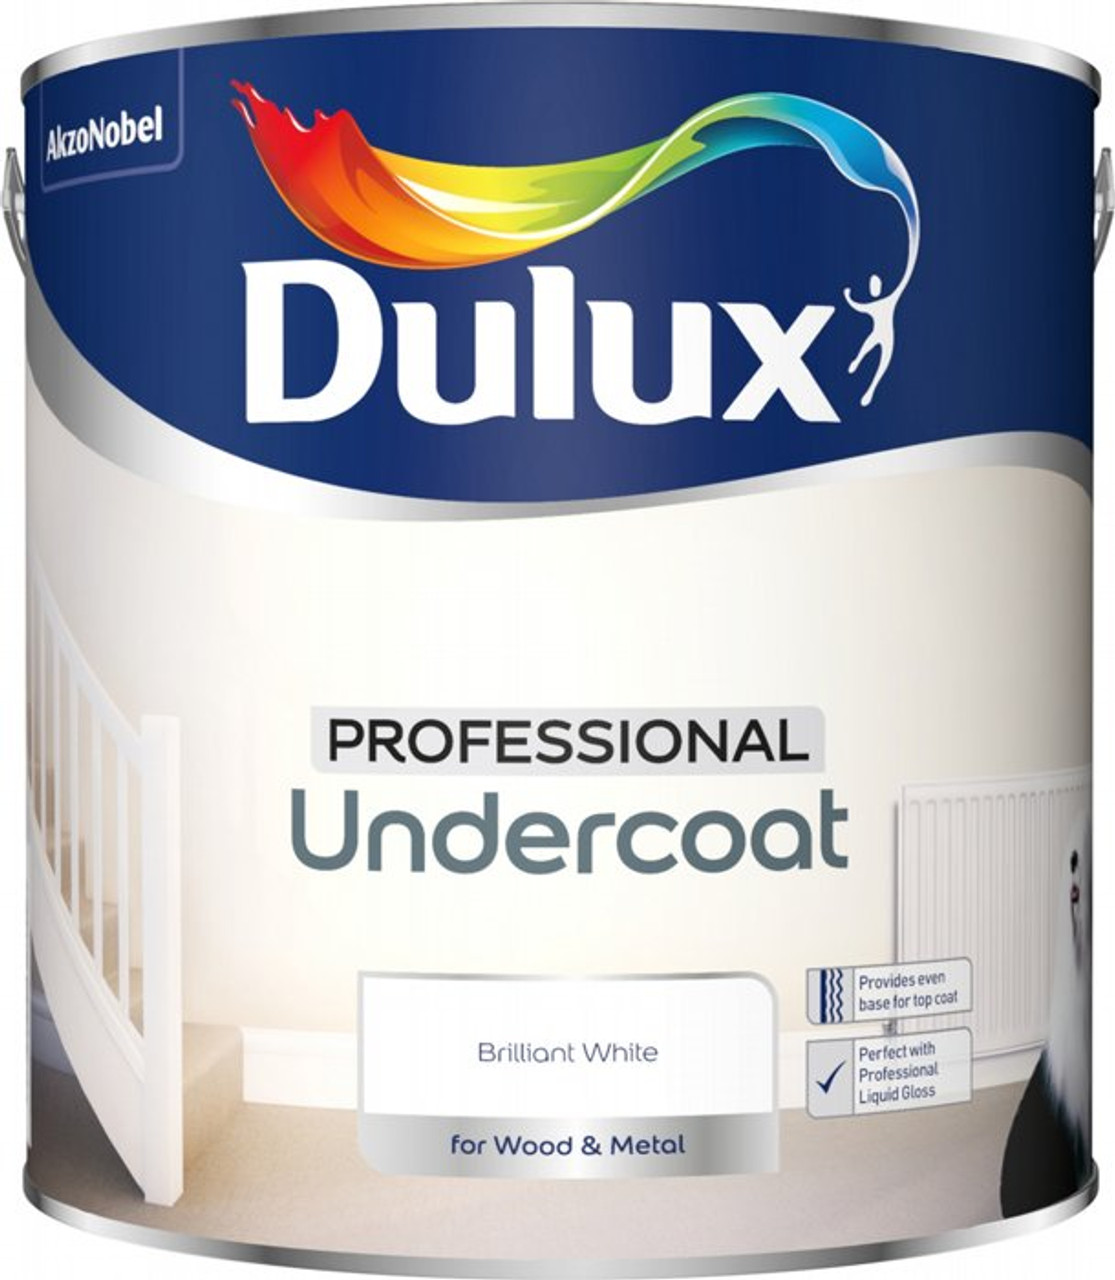 Dulux 2.5Ltr Undercoat Pure Brilliant White